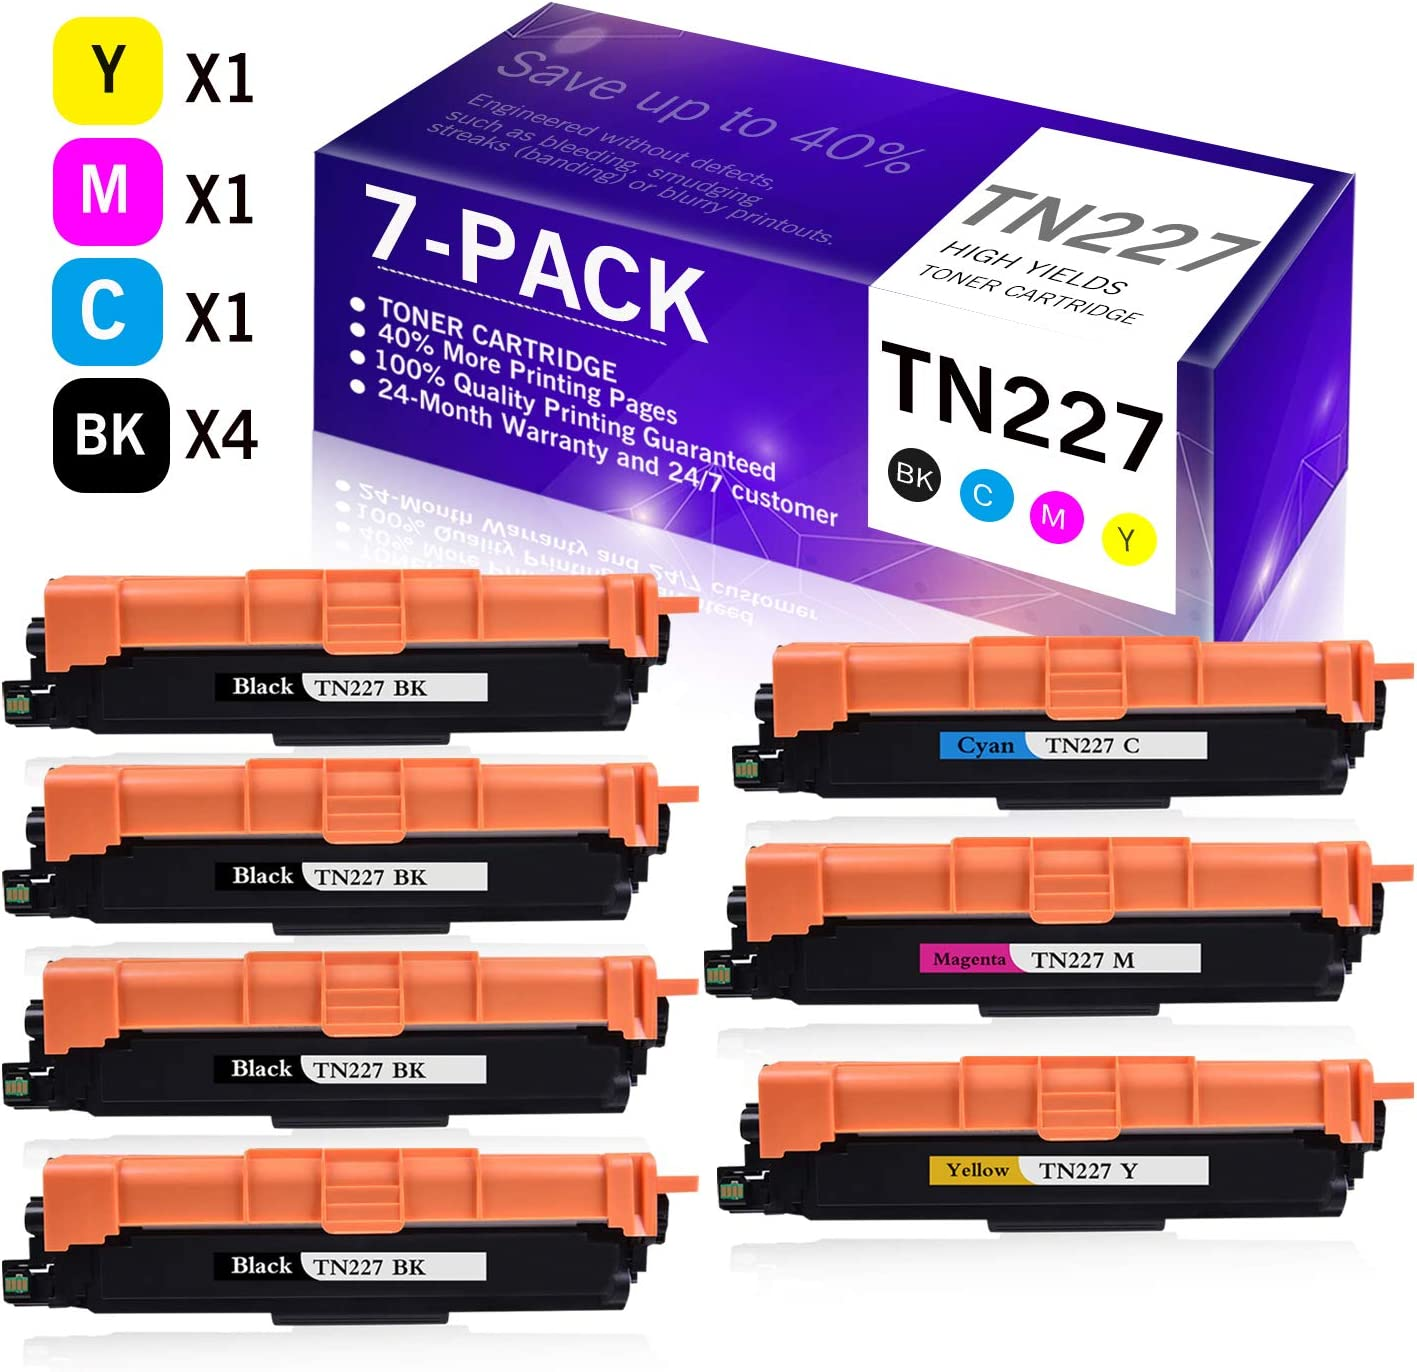 4BK+1C+1M+1Y 7-Pack Replacement Toner Cartridge Compatible for Brother TN-227 TN227 MFC-L3770CDW MFC-L3730CDW HL-3210CW HL-3230CDW HL-3290CDW DCP-L3510CDW DCP-L3550CDW Printer